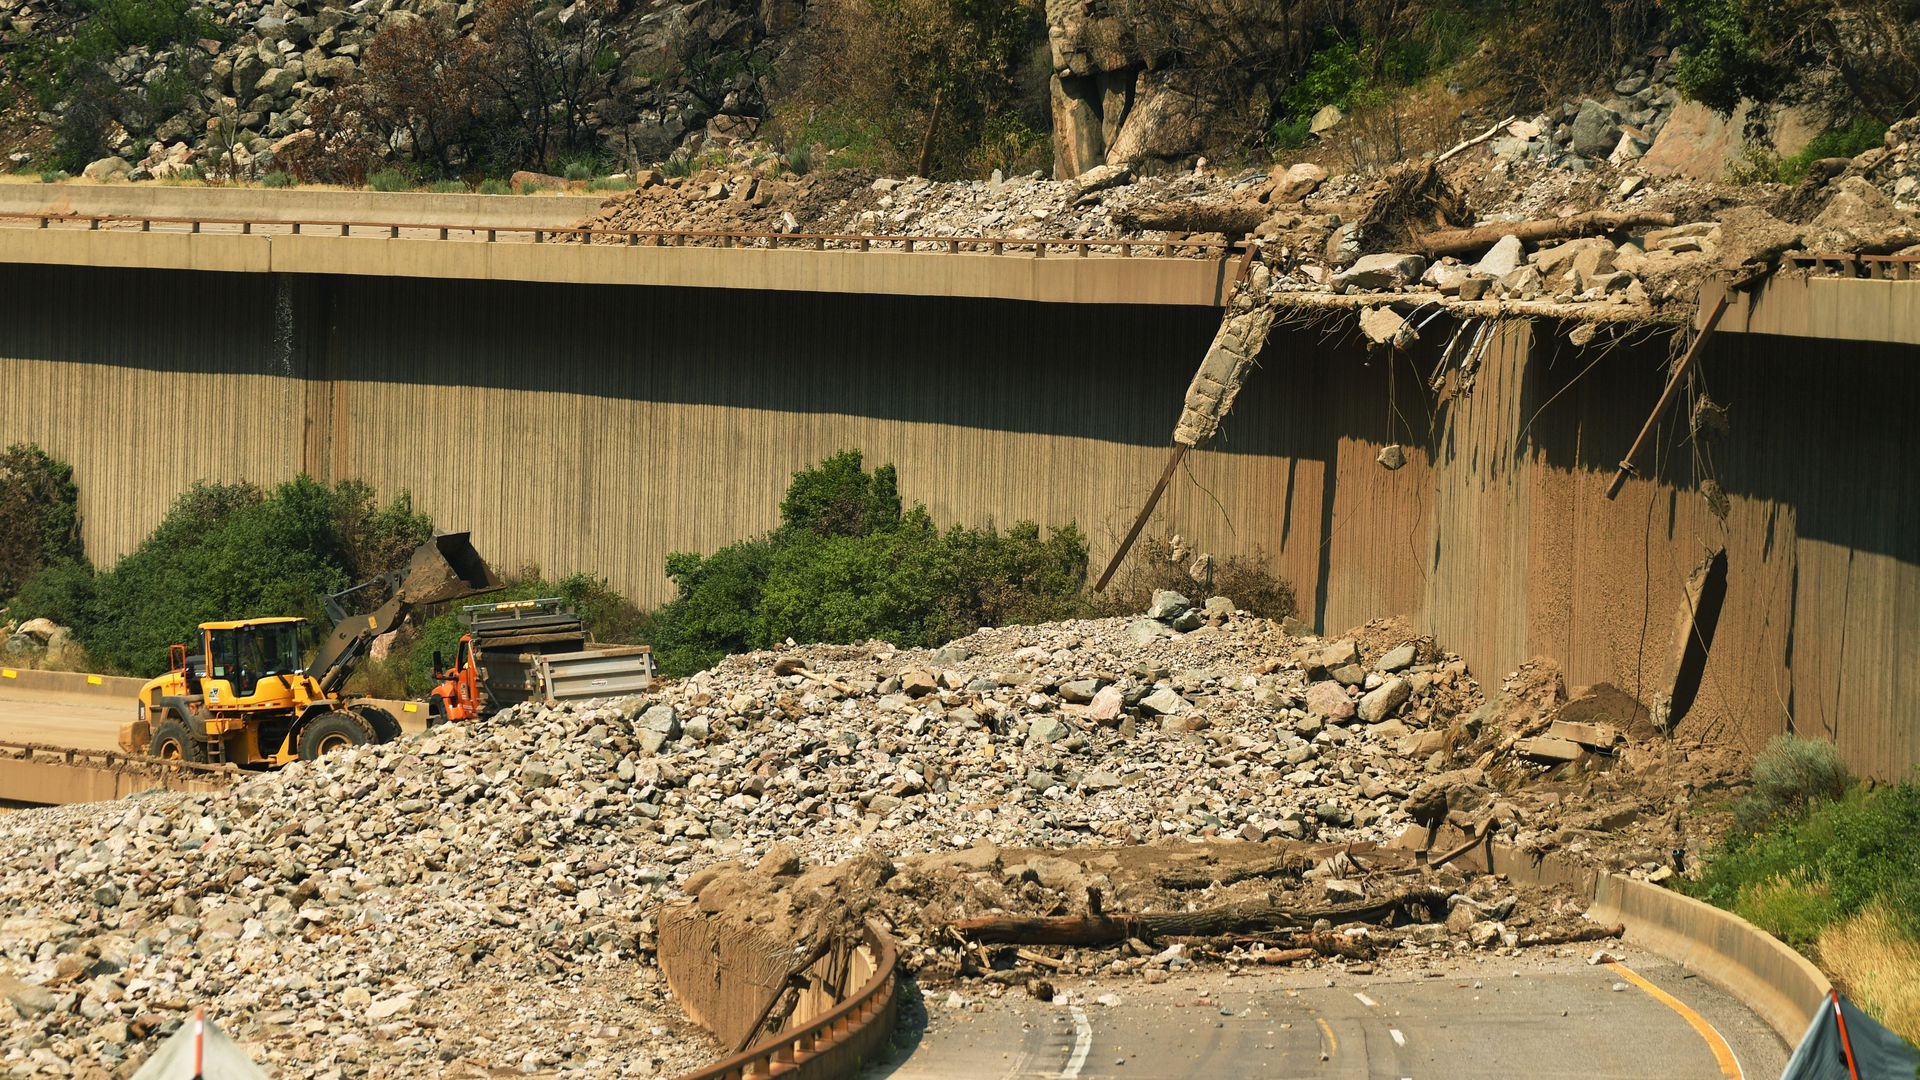 Crews work to reopen Interstate 70 through Glenwood Canyon after a mudslide in August. Photo: RJ Sangosti/The Denver Post via Getty Images